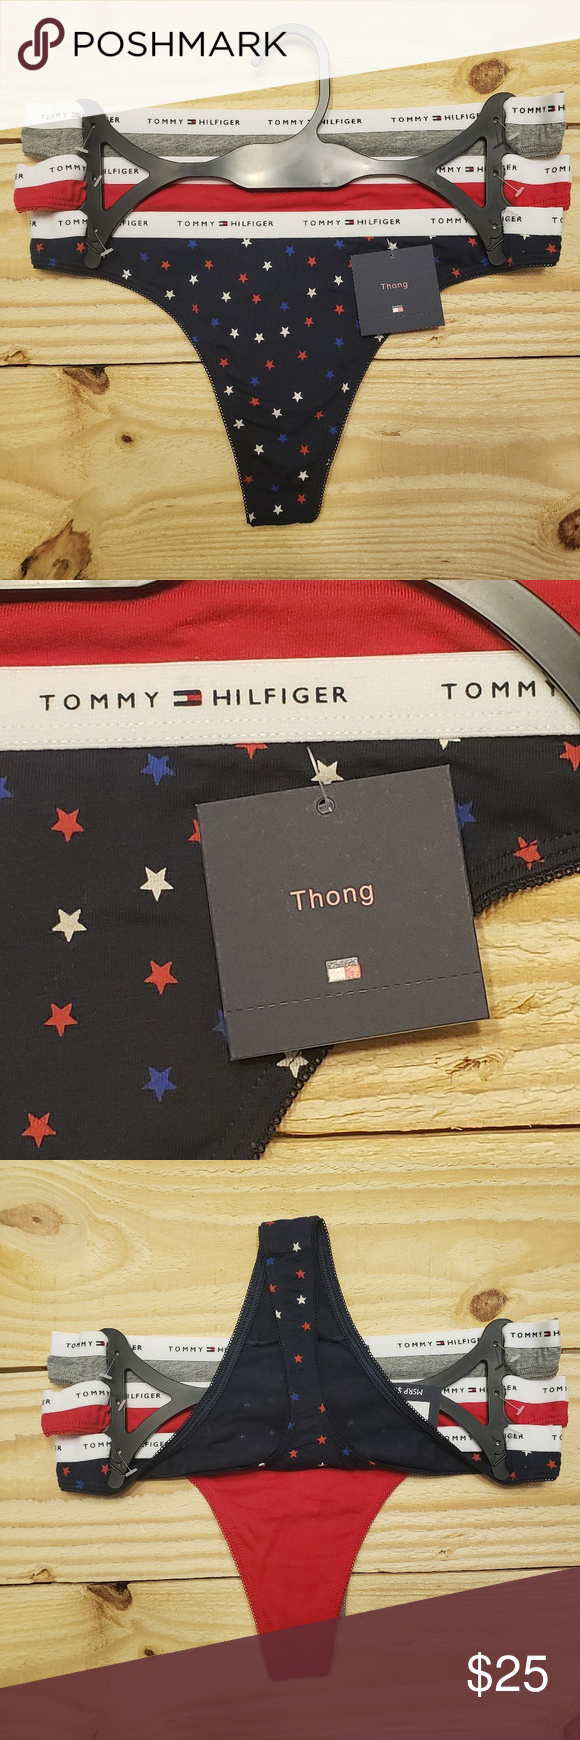 58a0e59f57b Tommy Hilfiger Women Thong Underwear 3 Pack cotton NEW Tommy Hilfiger  Women s Thong Underwear 3 Pack Panty Size  Multiple sizes Color  (Assorted)  Red